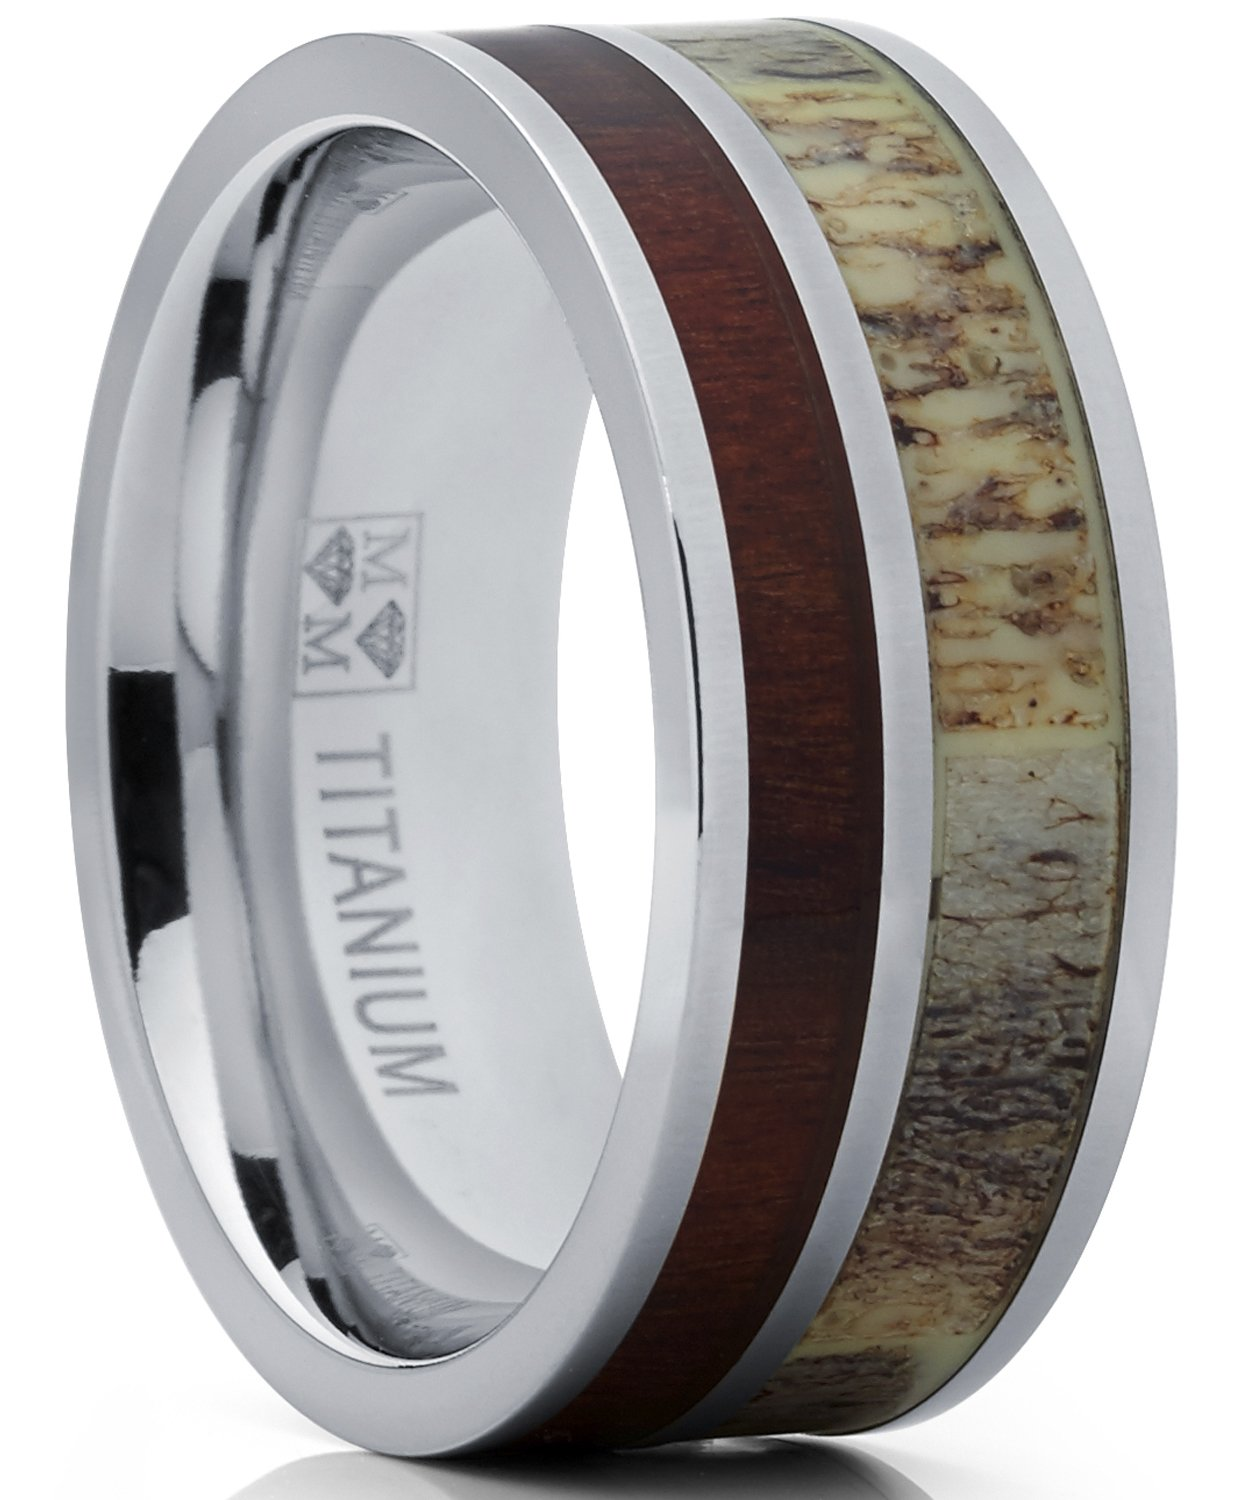 Metal Masters Co. Men's Titanium Ring Wedding Band with Real Antler and Koa Wood Inlay, Outdoor Hunting, comfort fit 9